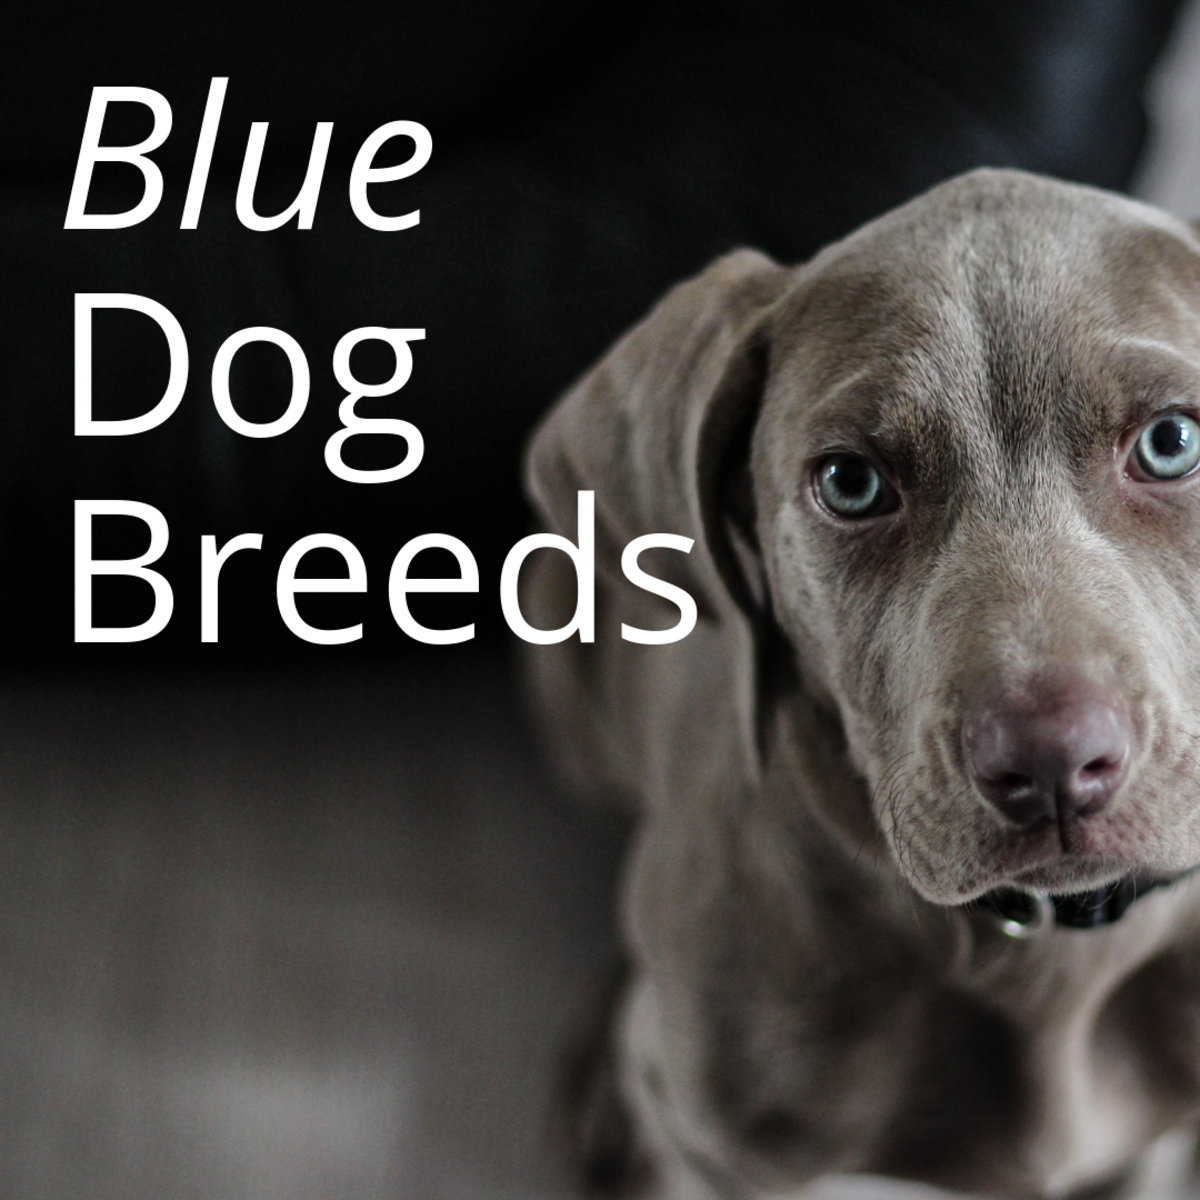 Blue Dog Breeds—What Makes Them so Beautiful?